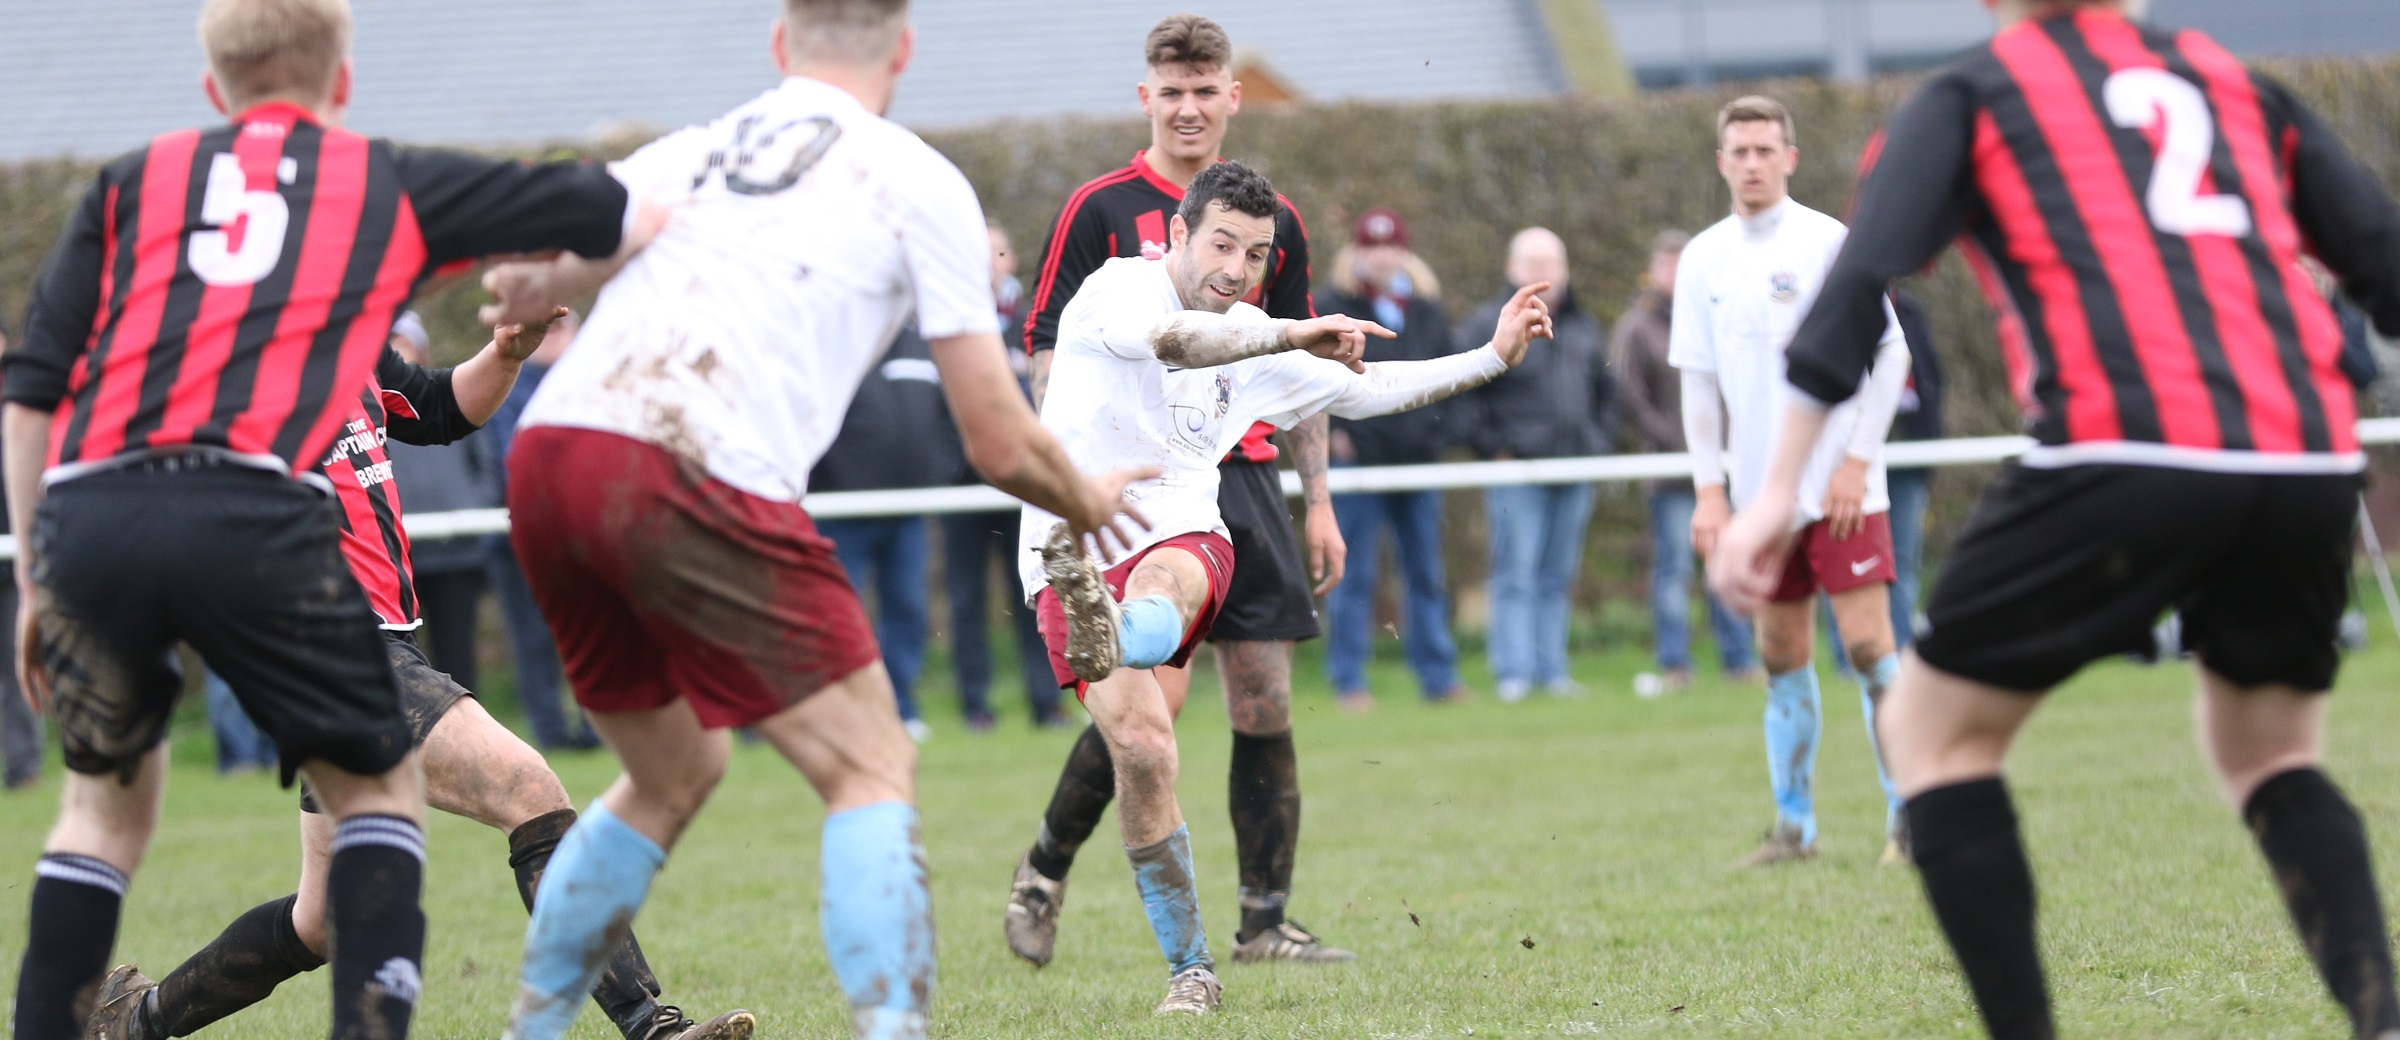 In Pictures: Stokesley Sports Club 0-3 South Shields